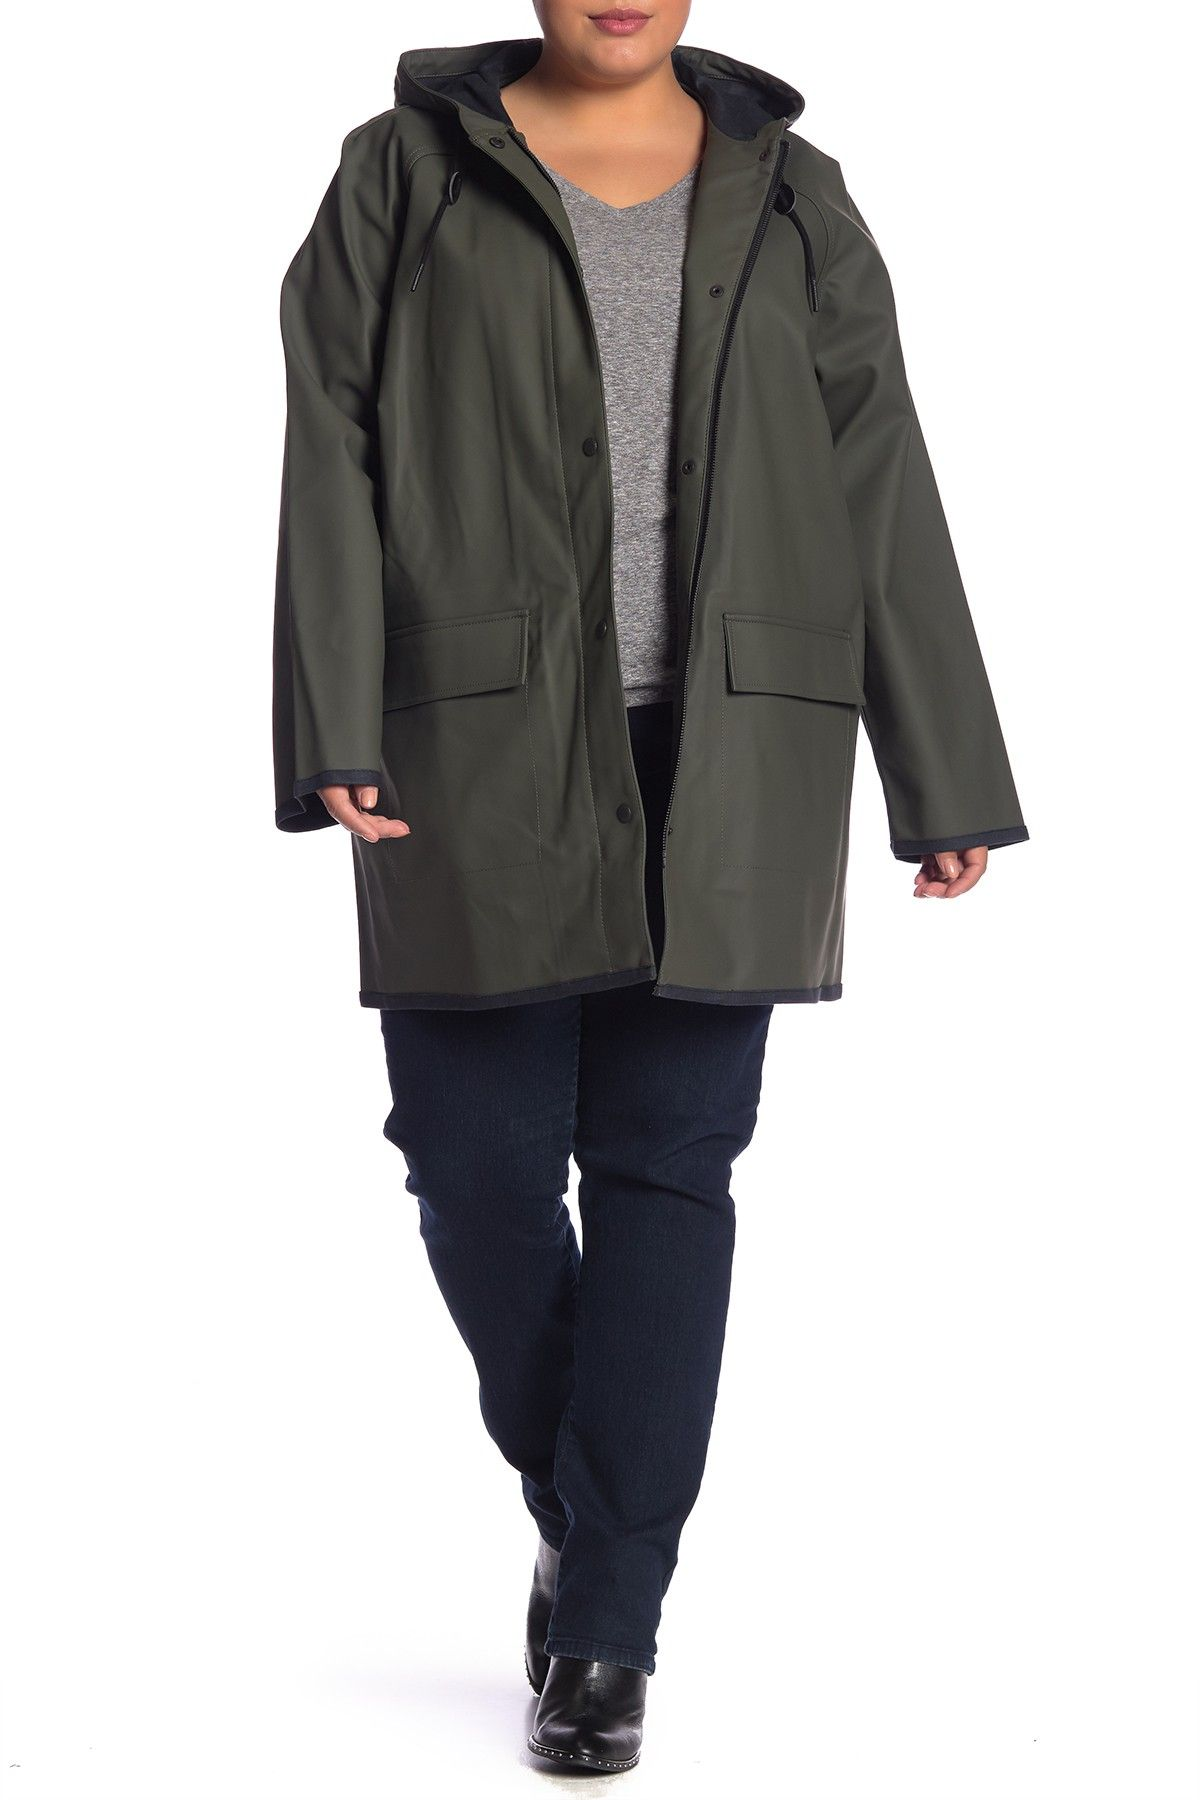 462b7ad1926 Levi s - Waterproof Raincoat (Plus Size) is now 61% off. Free Shipping on  orders over  100.